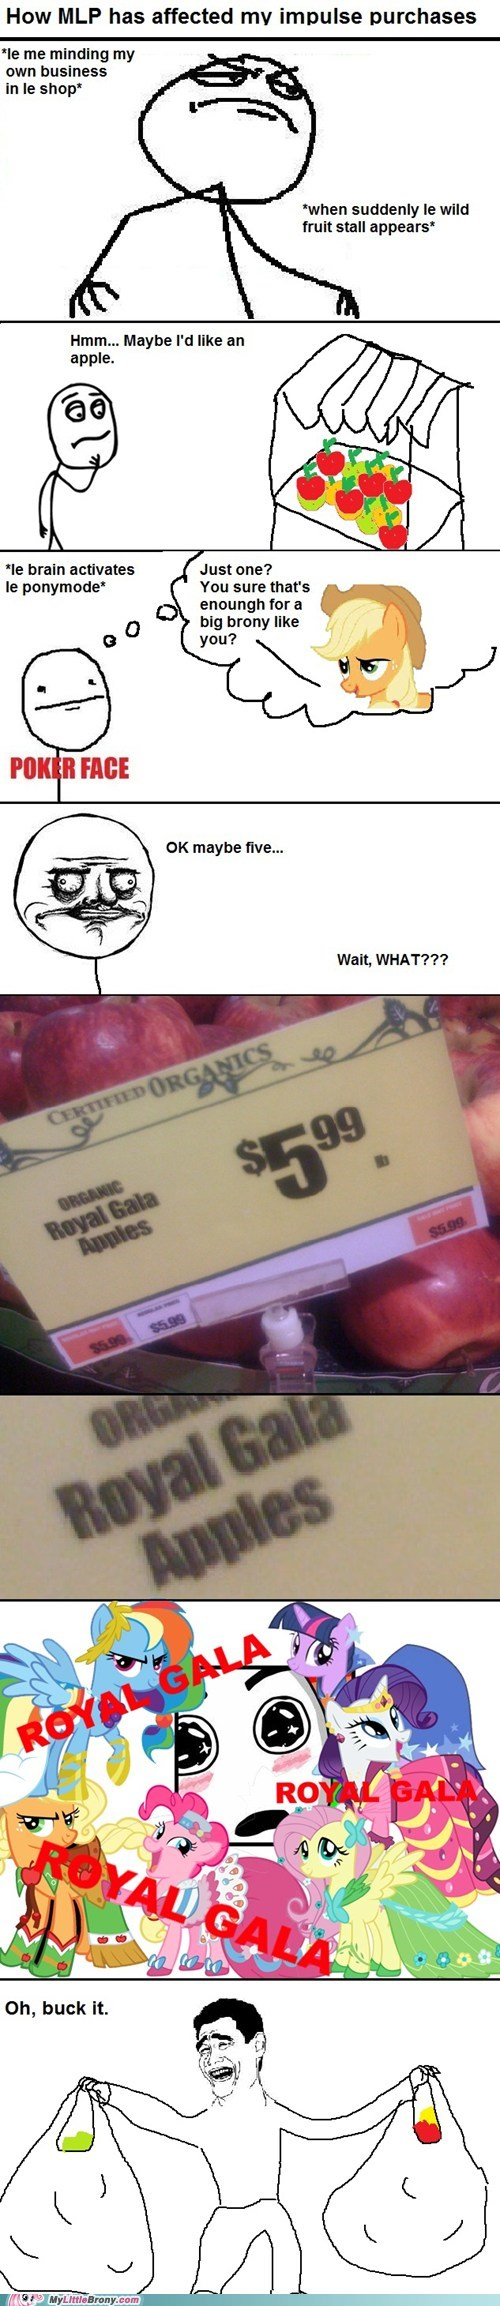 applejack apples comic comics impulse shopping - 6323797248